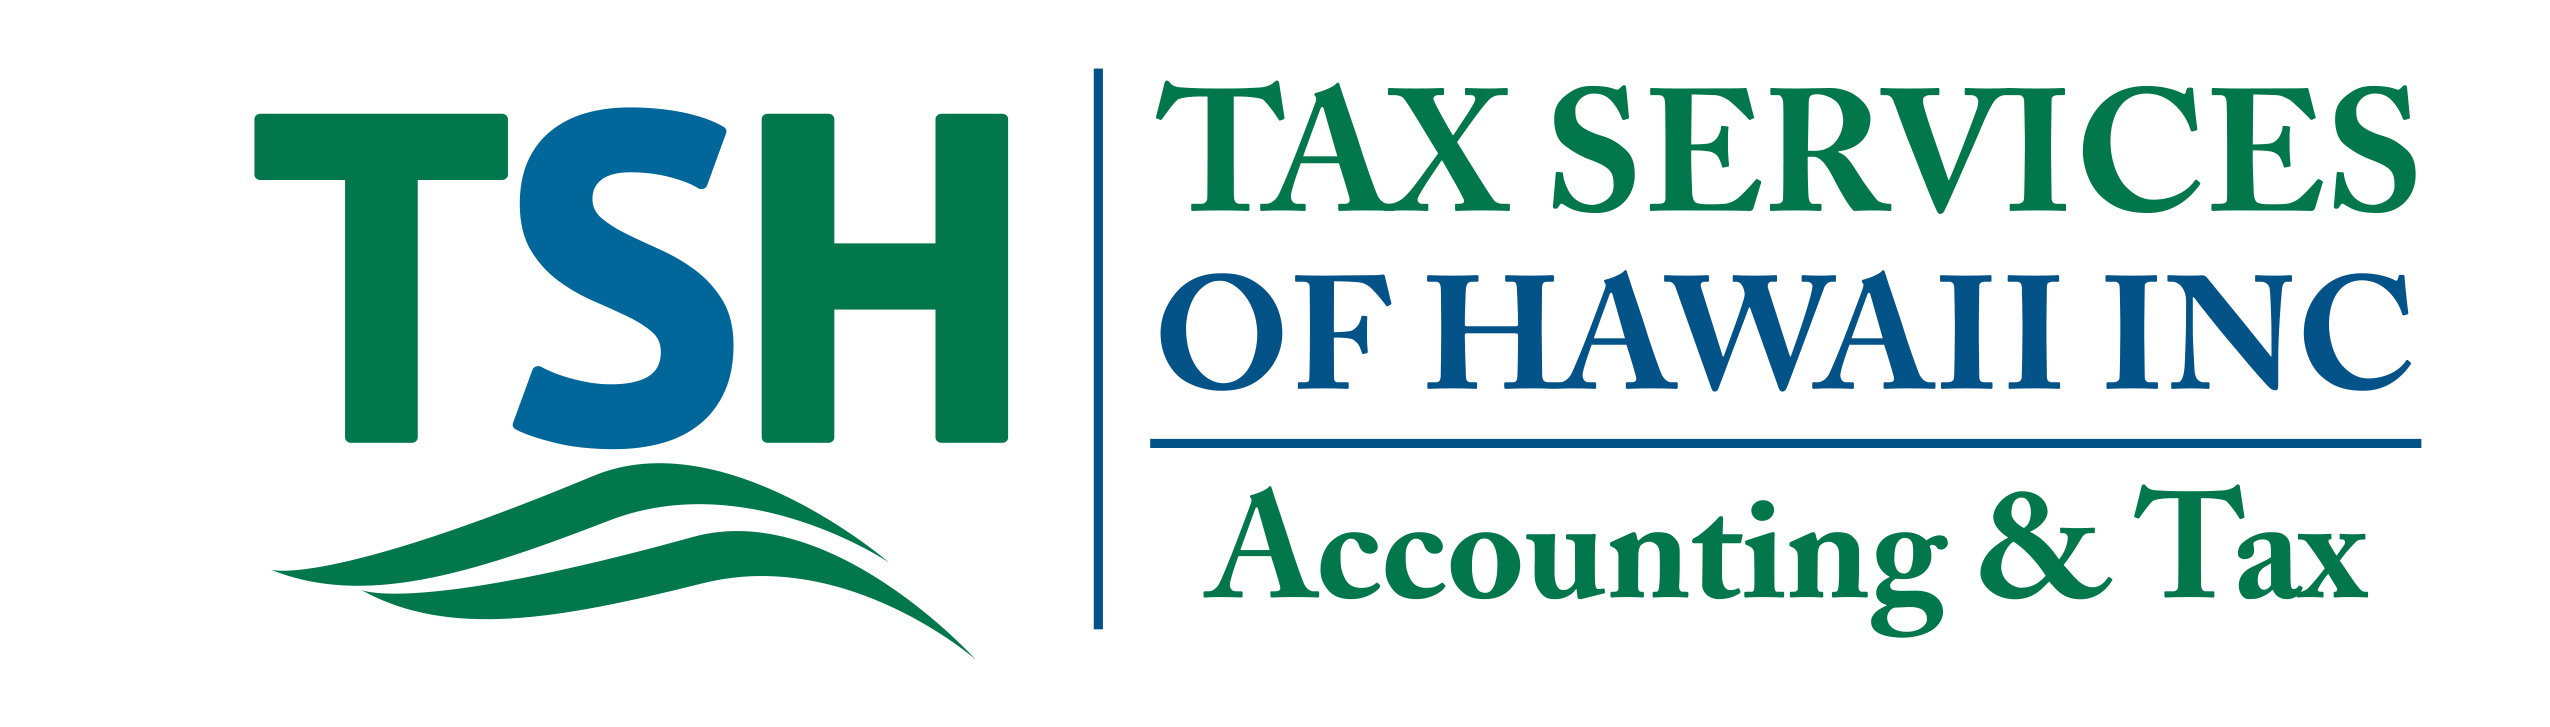 Tax Services of Hawaii